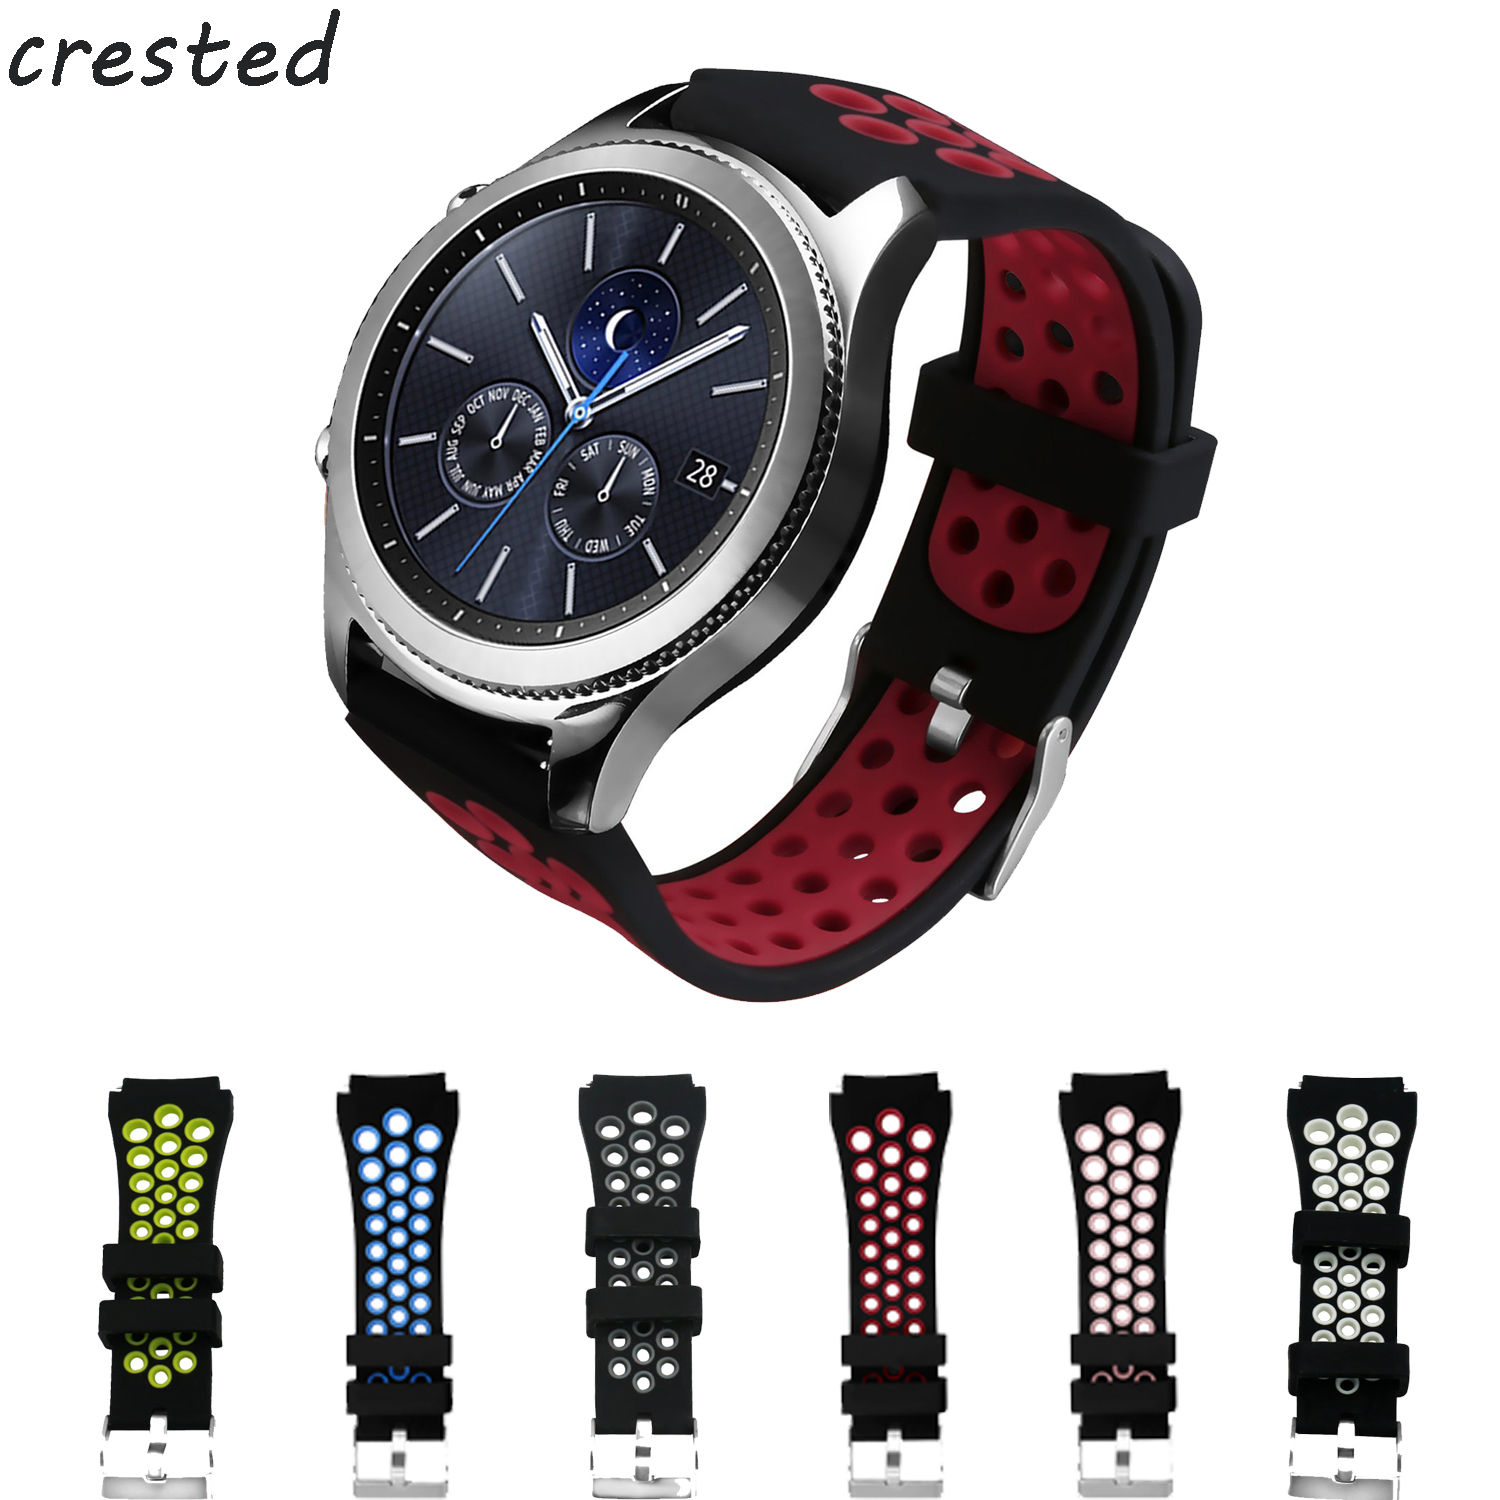 sport silicone strap for samsung gear s3 Frontier/Classic band smart watch bracelet smartwatch wrist belt replacement wristband 2016 silicone rubber watch band for samsung galaxy gear s2 sm r720 replacement smartwatch bands strap bracelet with patterns